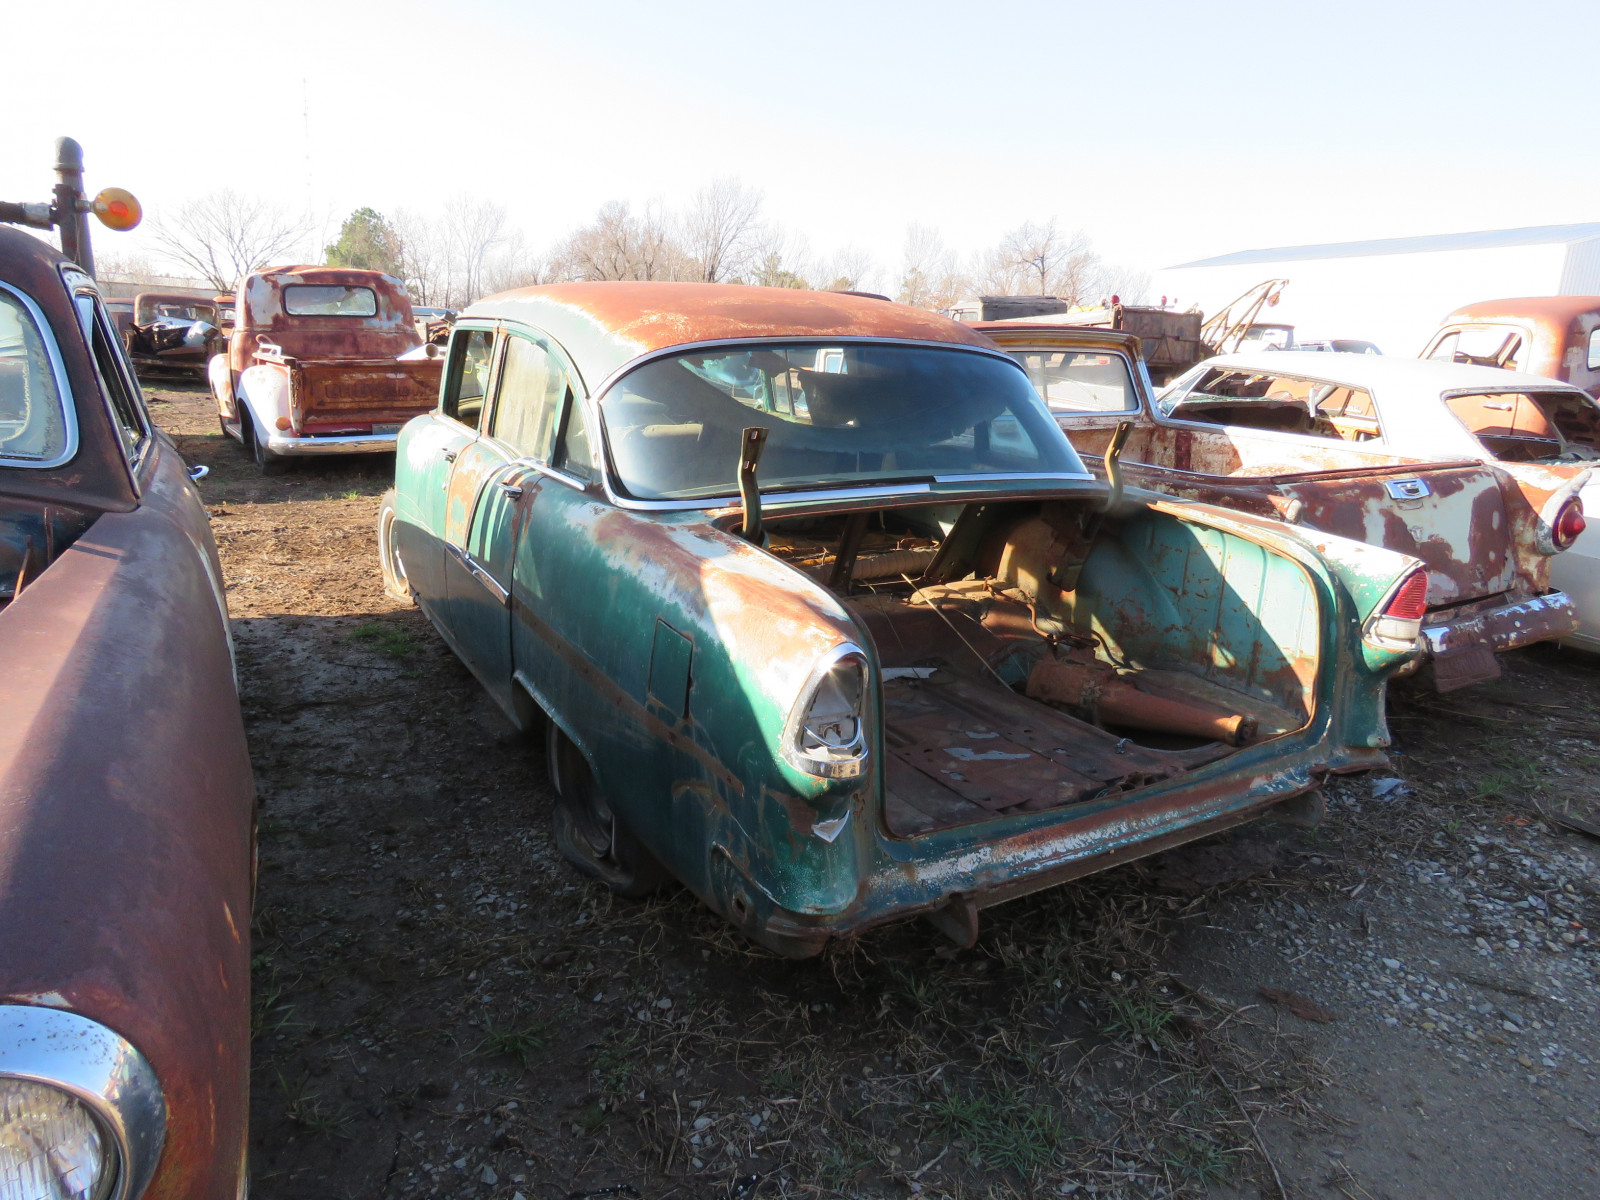 1955 Chevrolet 4dr Sedan for parts - Image 3